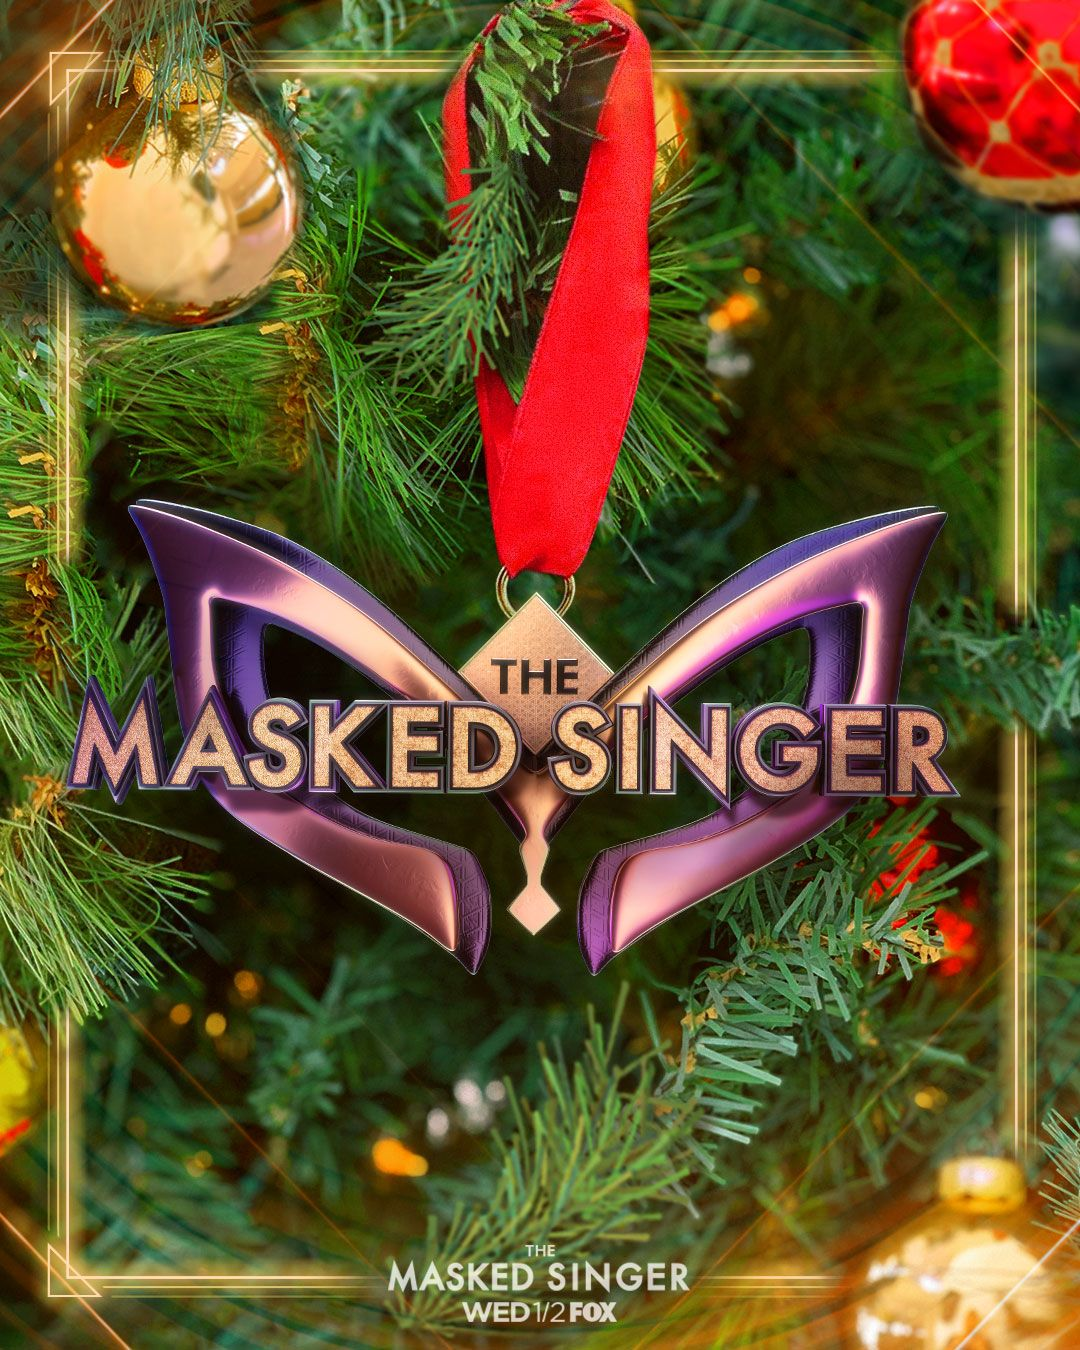 The Masked Singer Ornament Amazing Christmas Trees Singer Singing Competitions